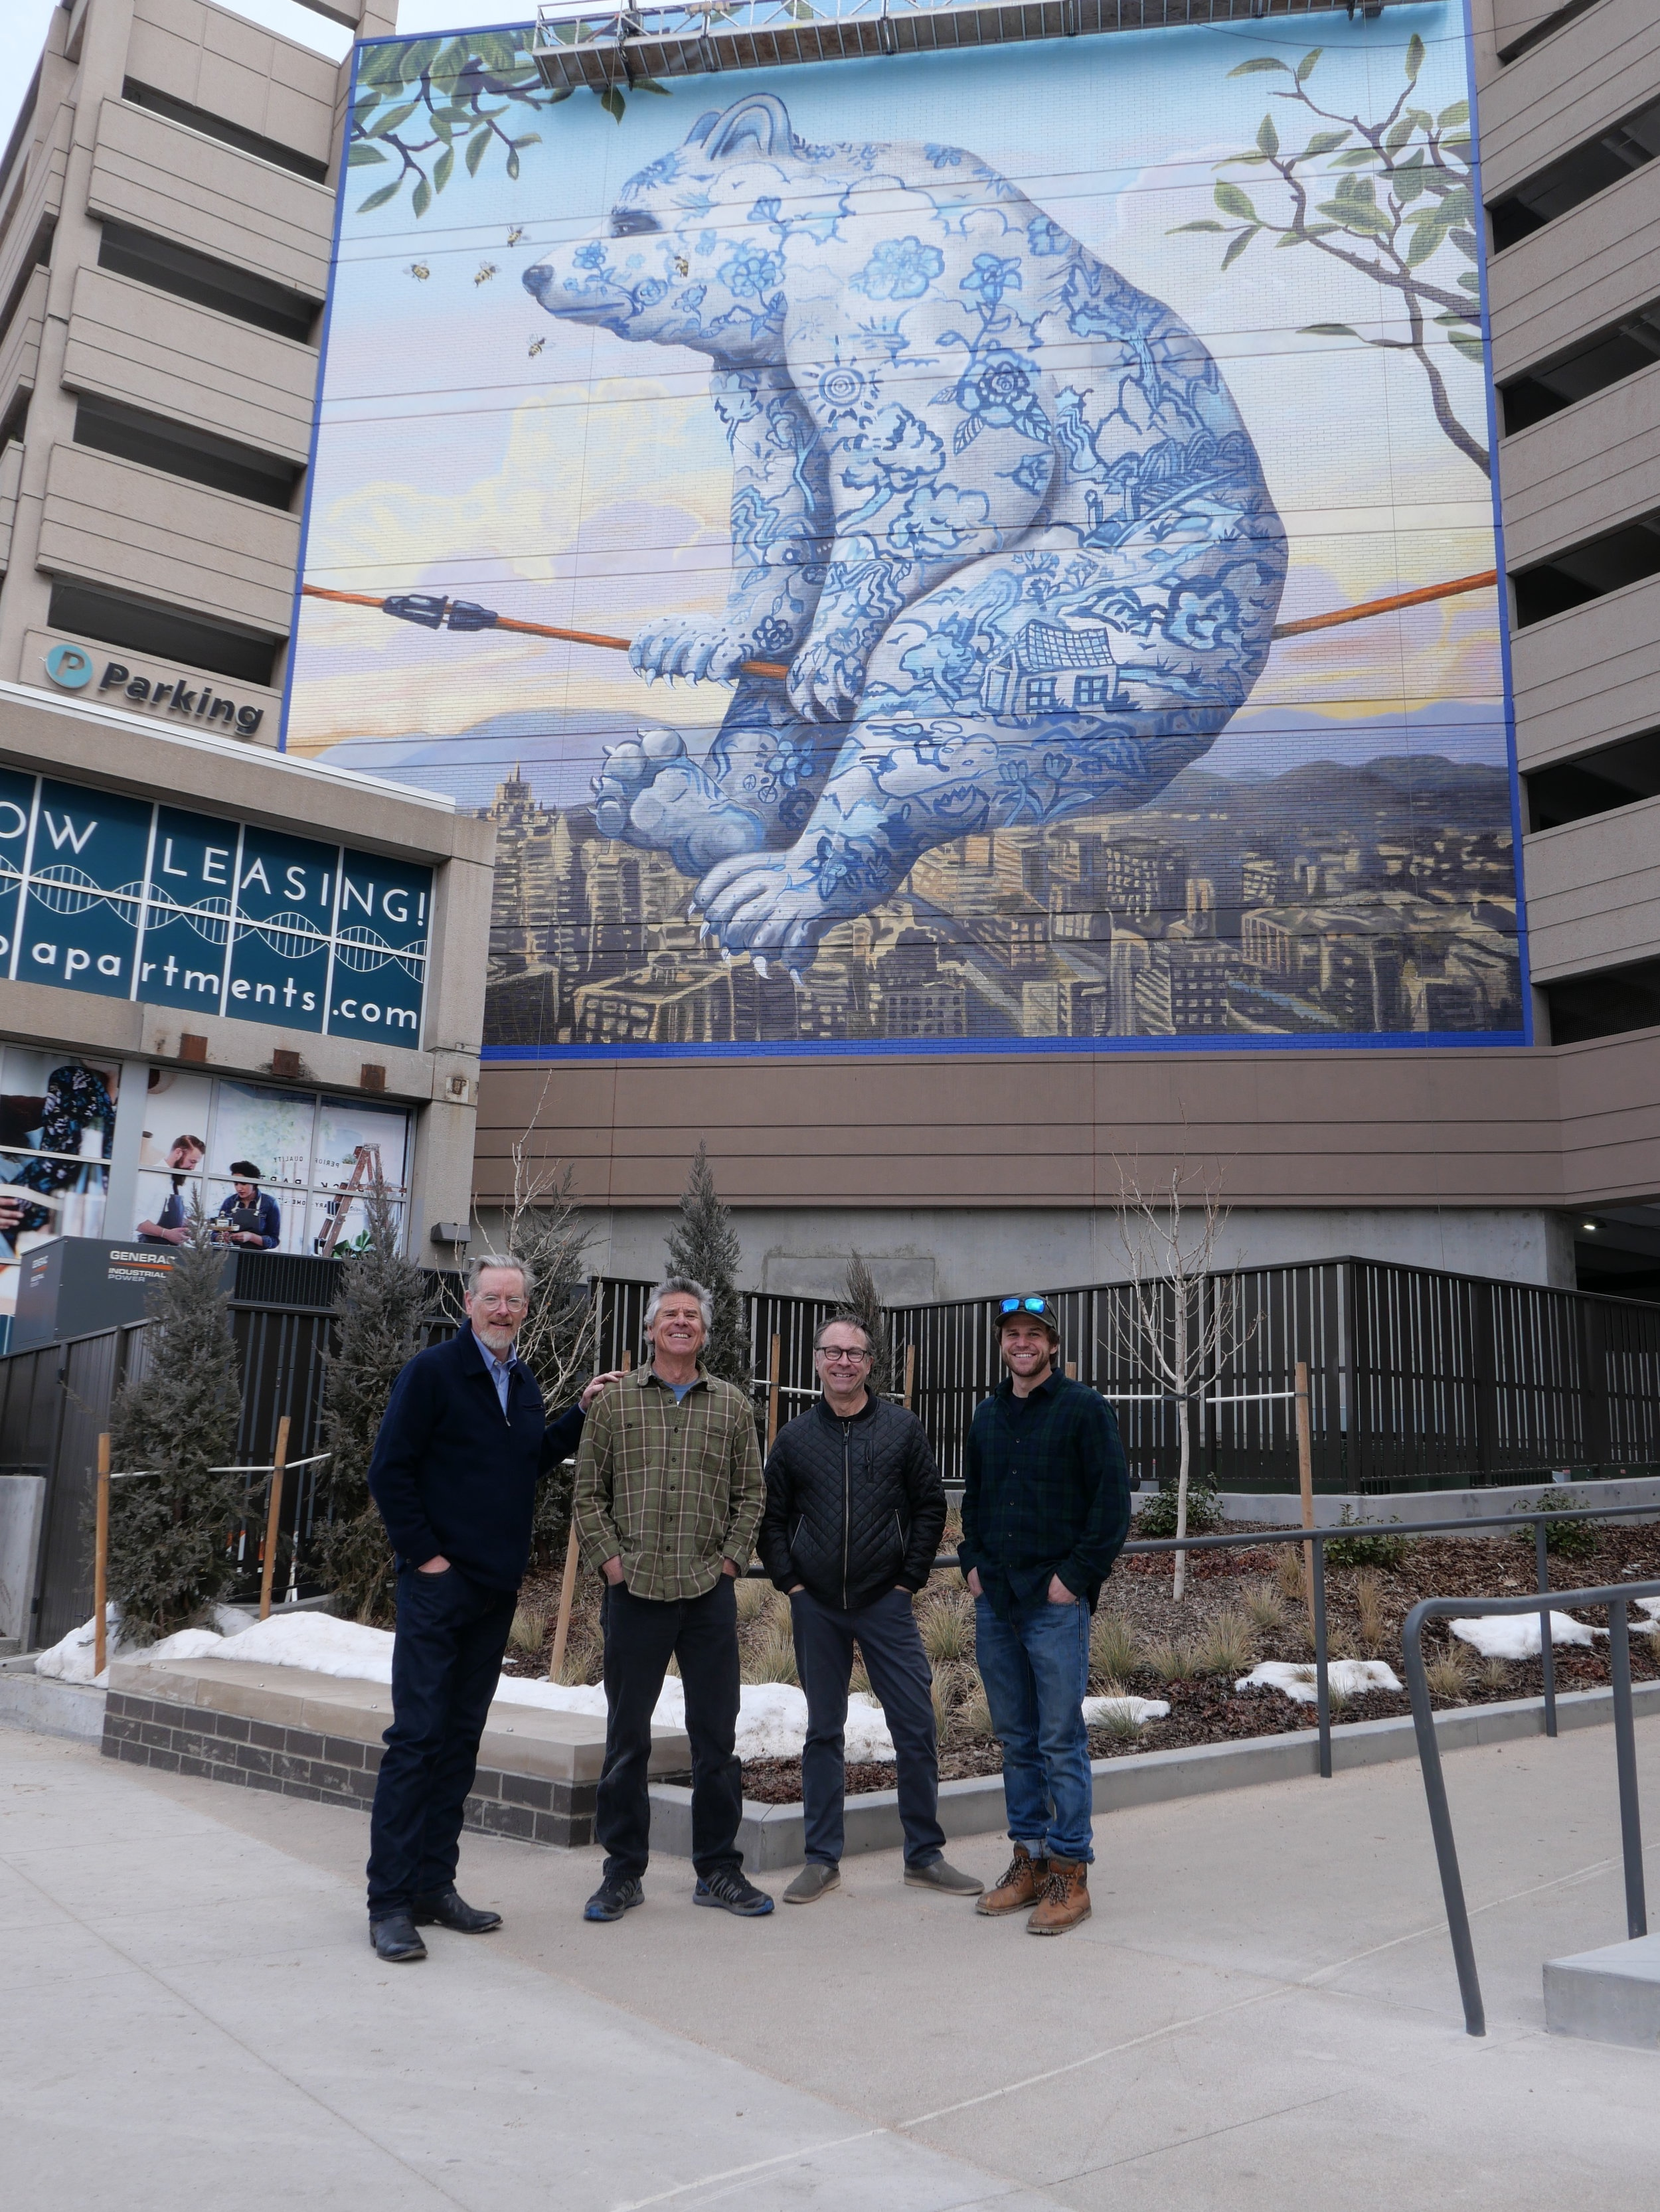 9th and Colorado_kevin sloan_public art services_j grant projects_19 .JPG